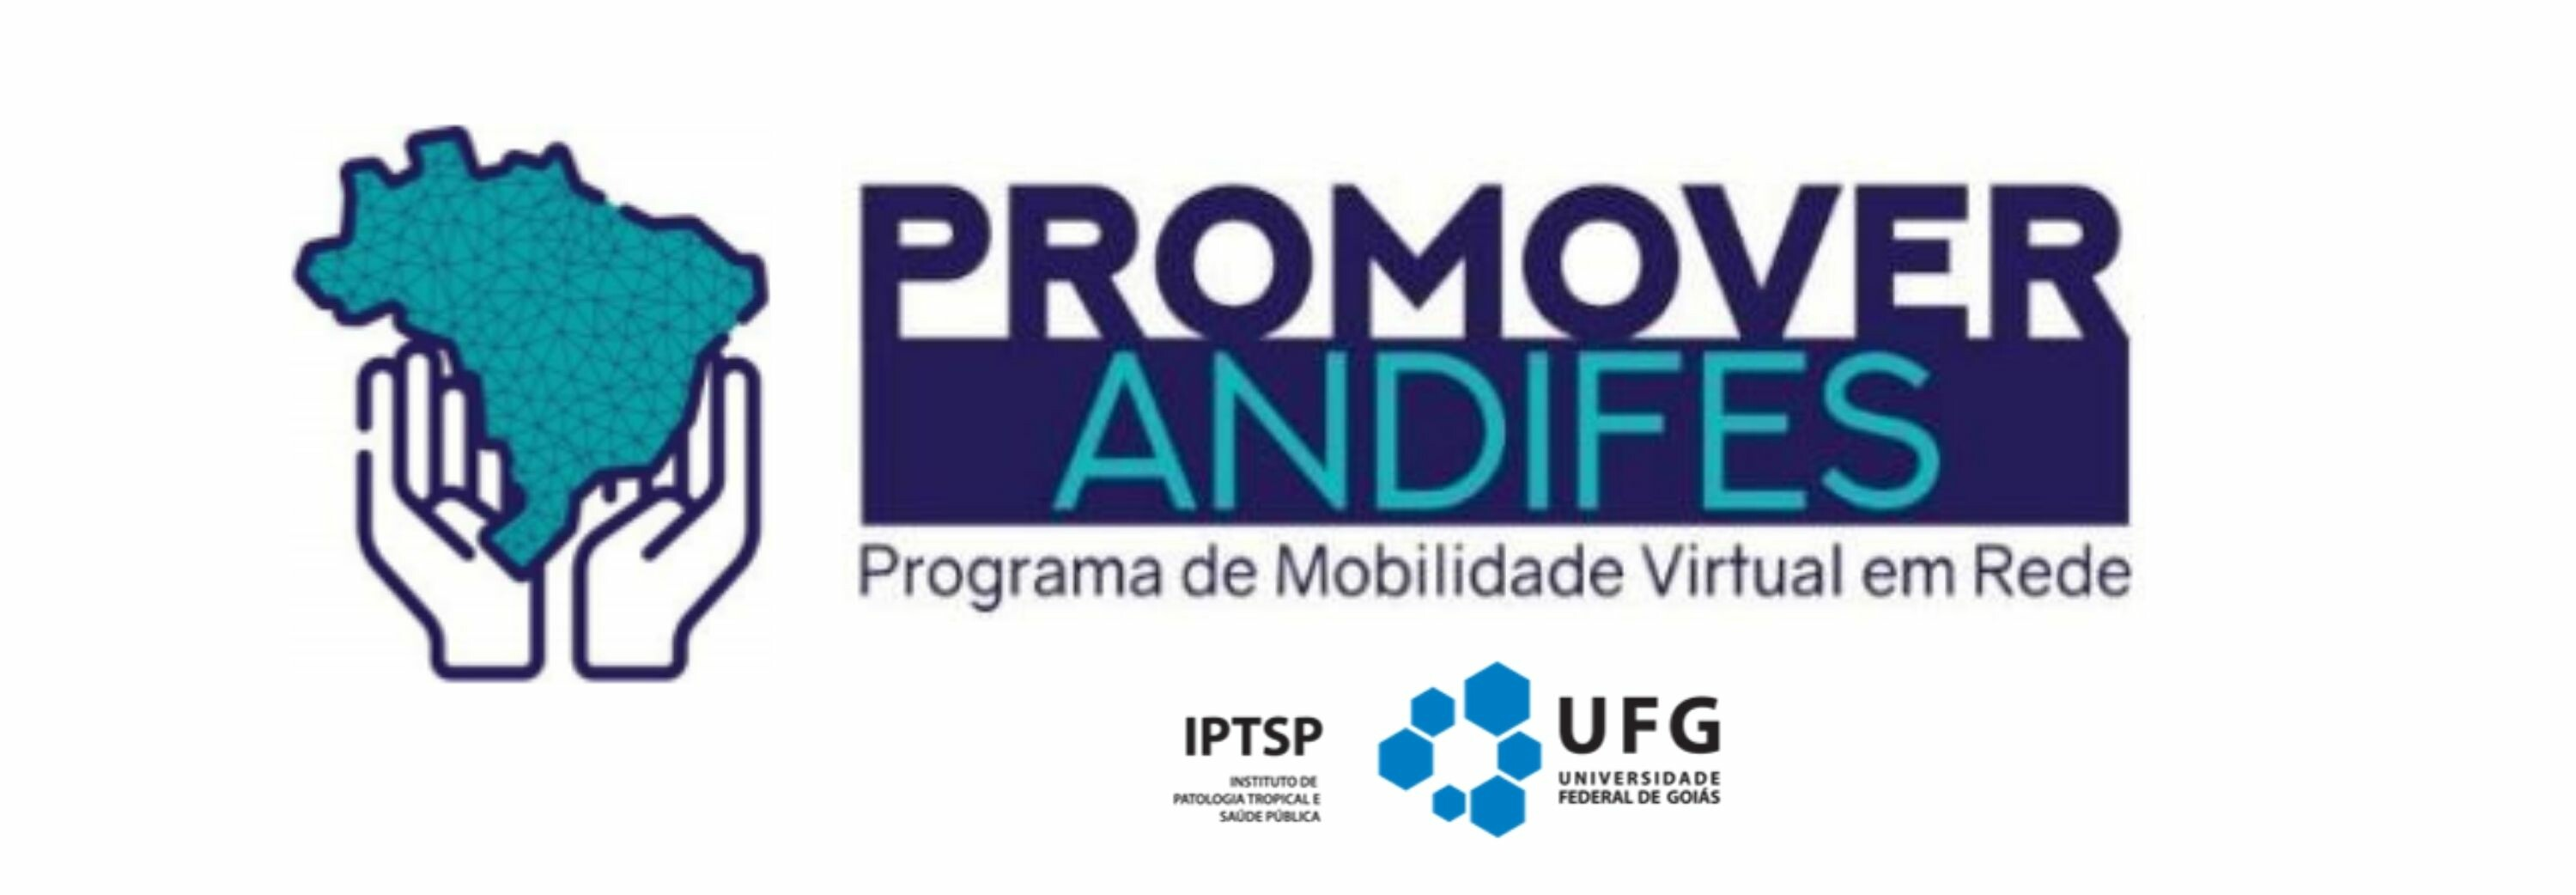 Banner promover andifes